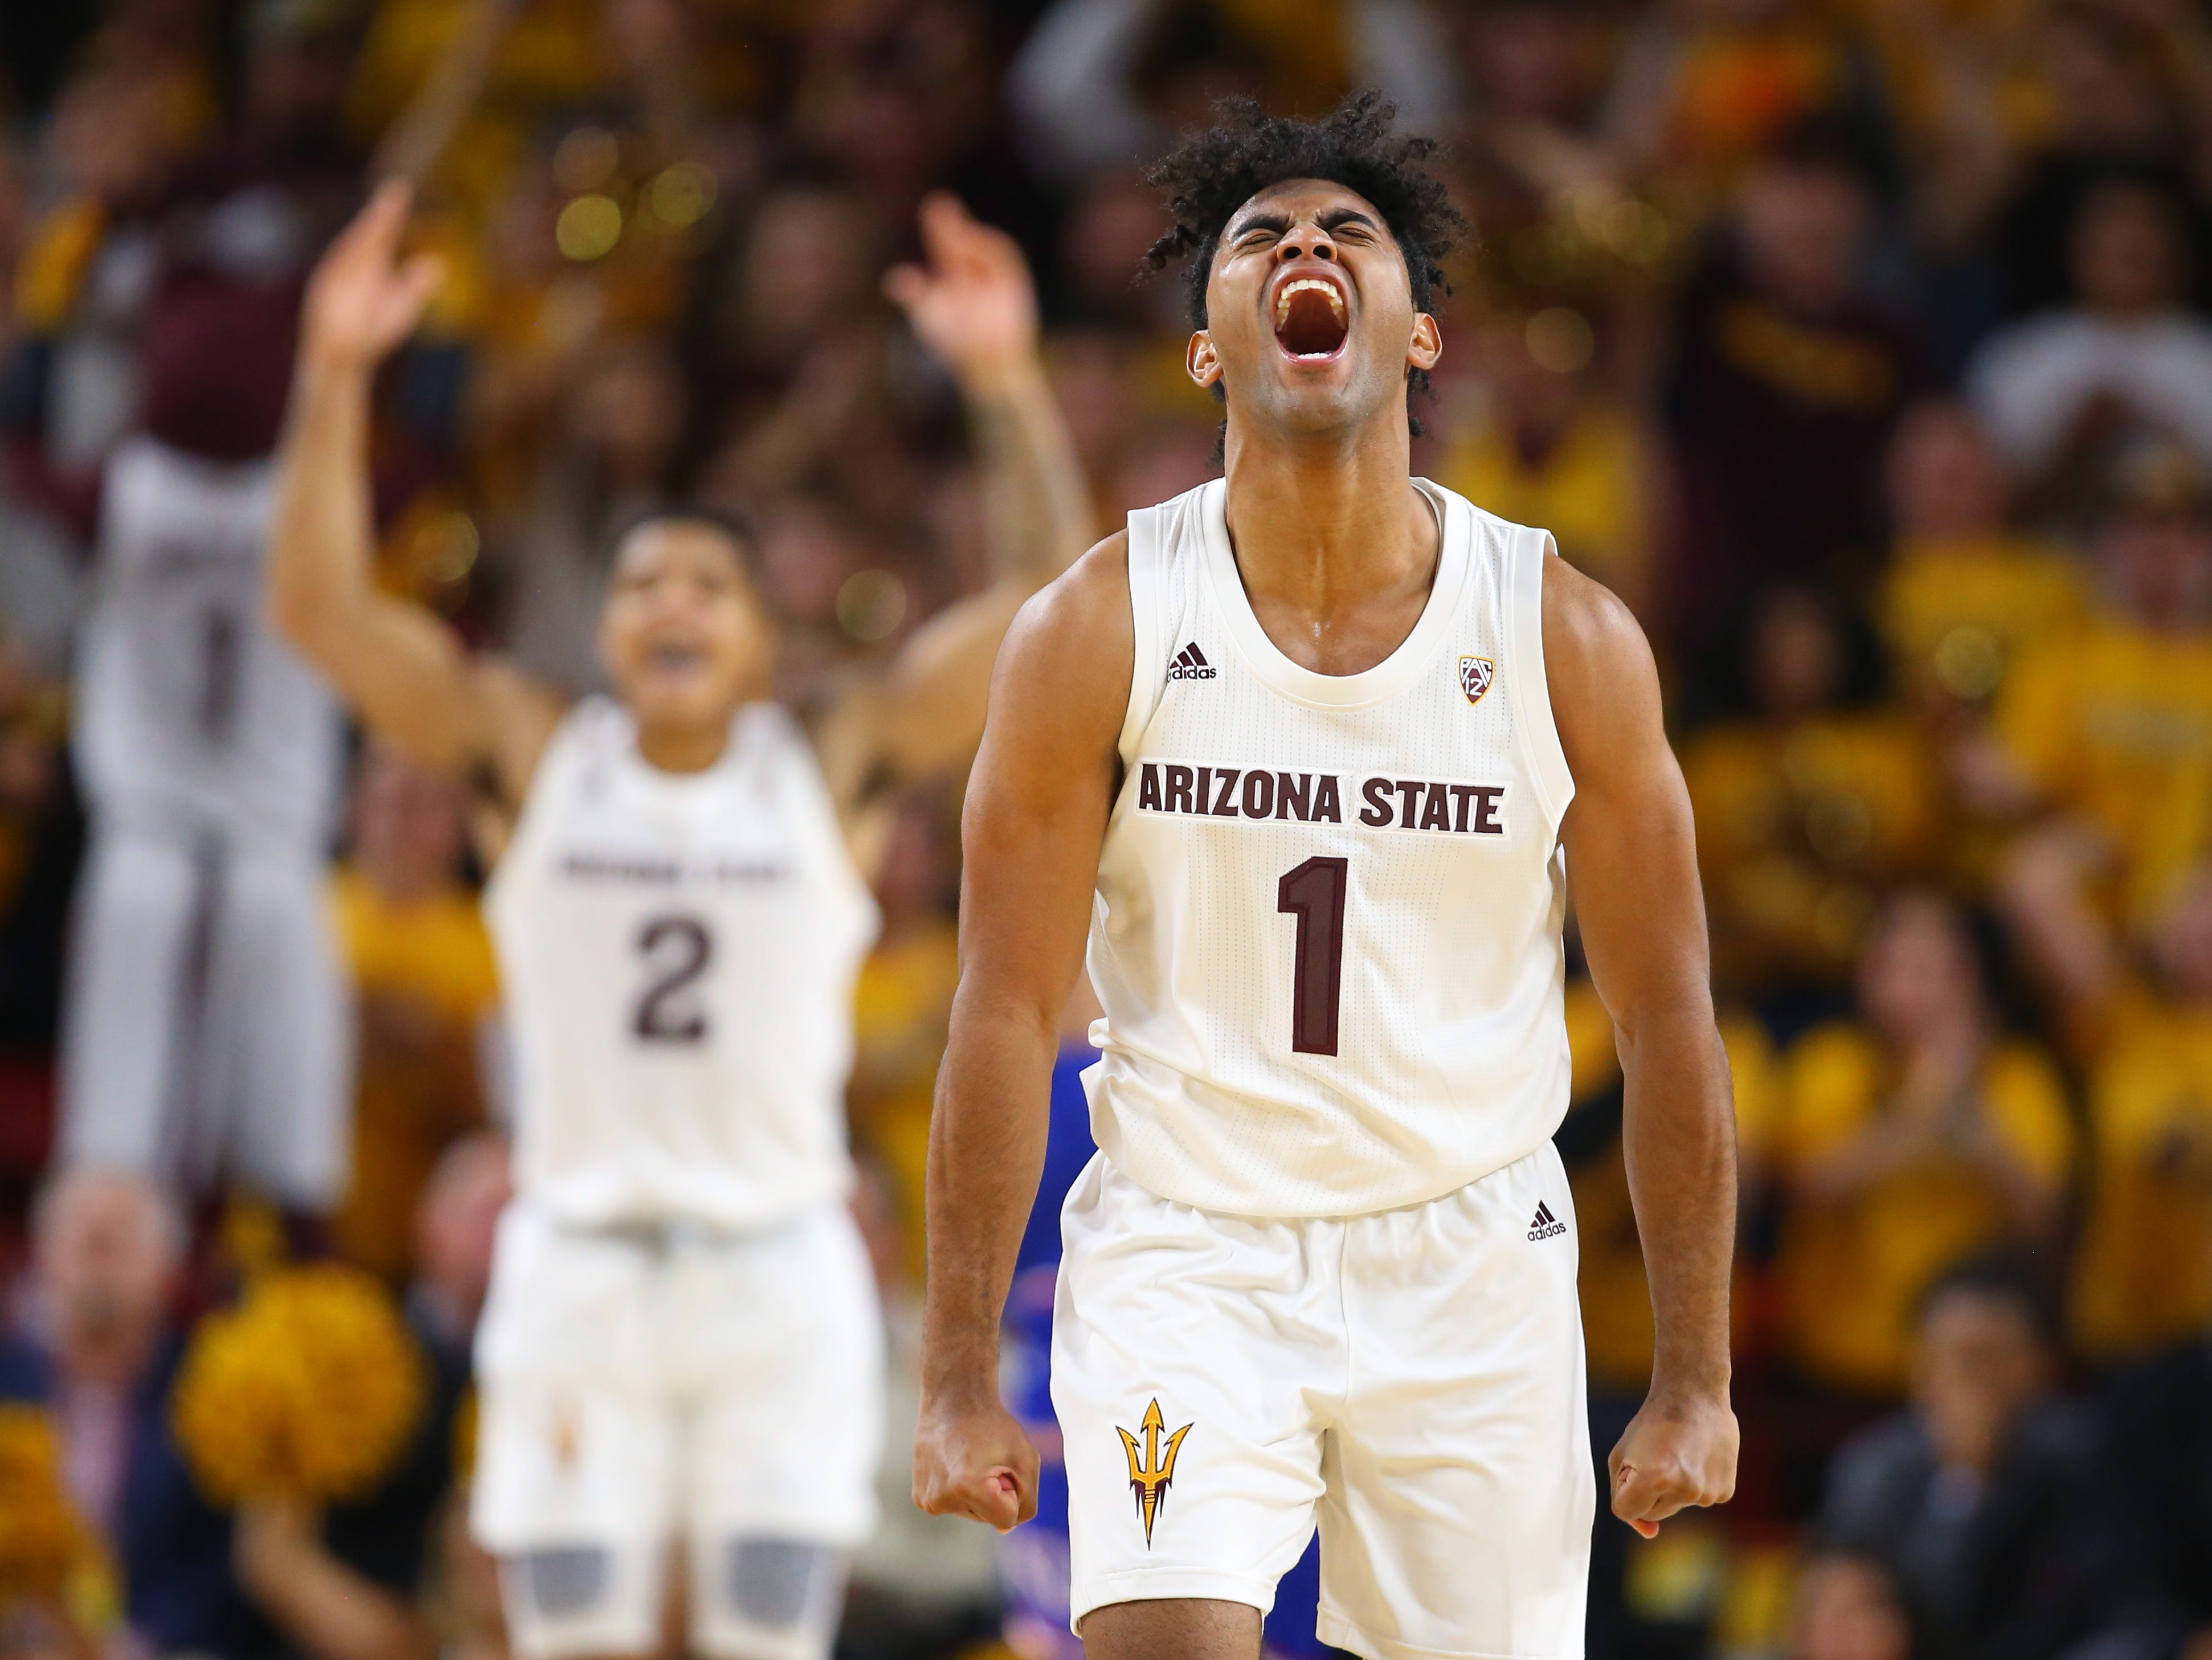 Dec. 22: Arizona State Sun Devils guard Remy Martin (1) celebrates in the second half of a win against the No. 1 Kansas Jayhawks.